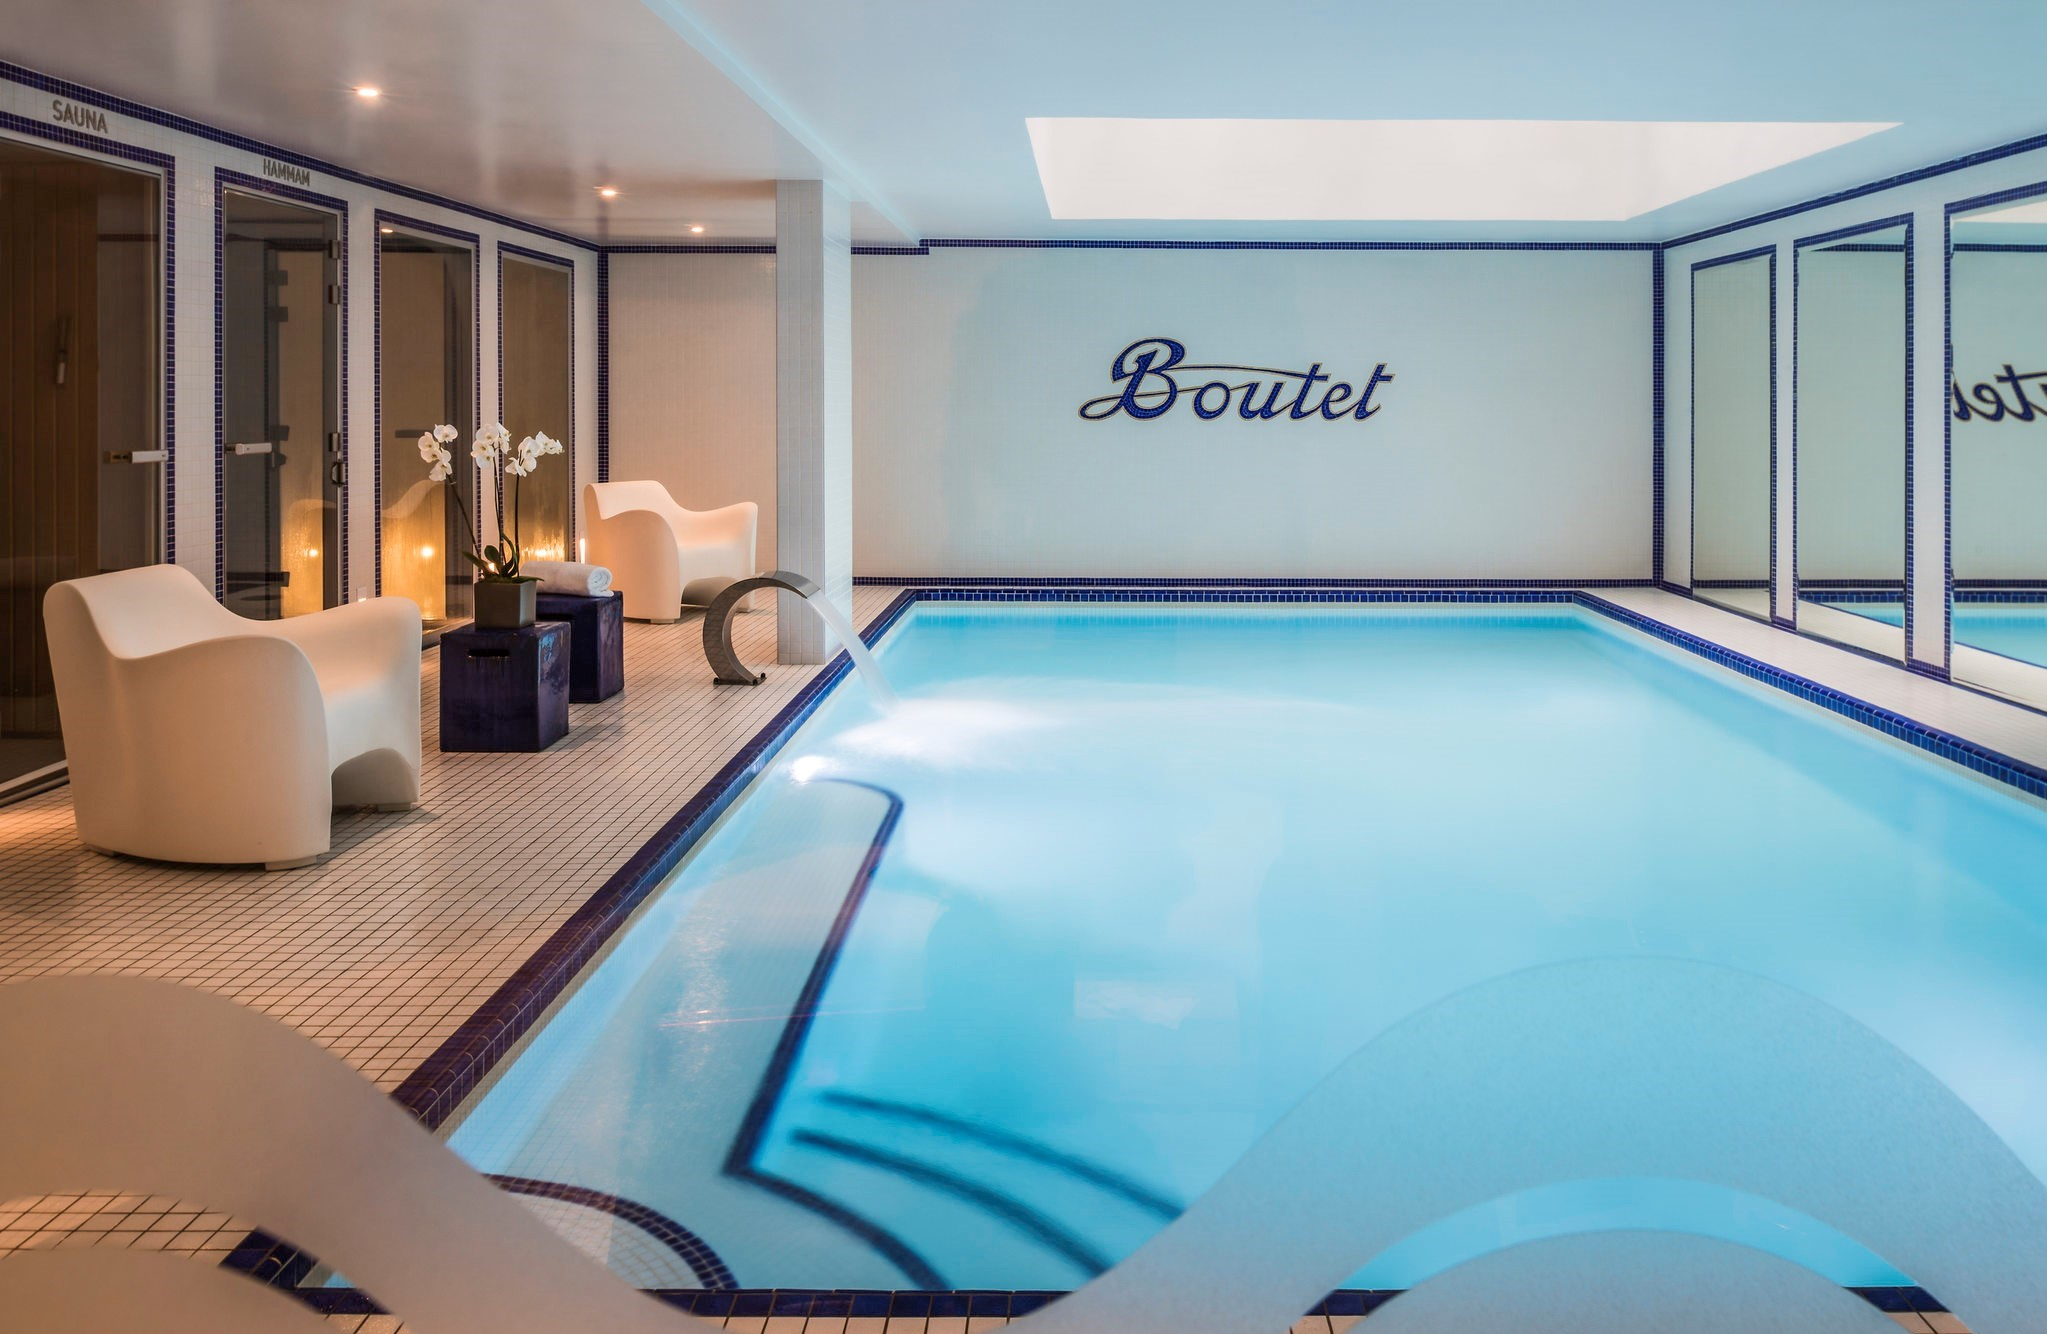 Image of Indoor Heated Pool Hôtel Paris Bastille Boutet - MGallery by Sofitel, 1926, Member of Historic Hotels Worldwide, in Paris, France, Spa